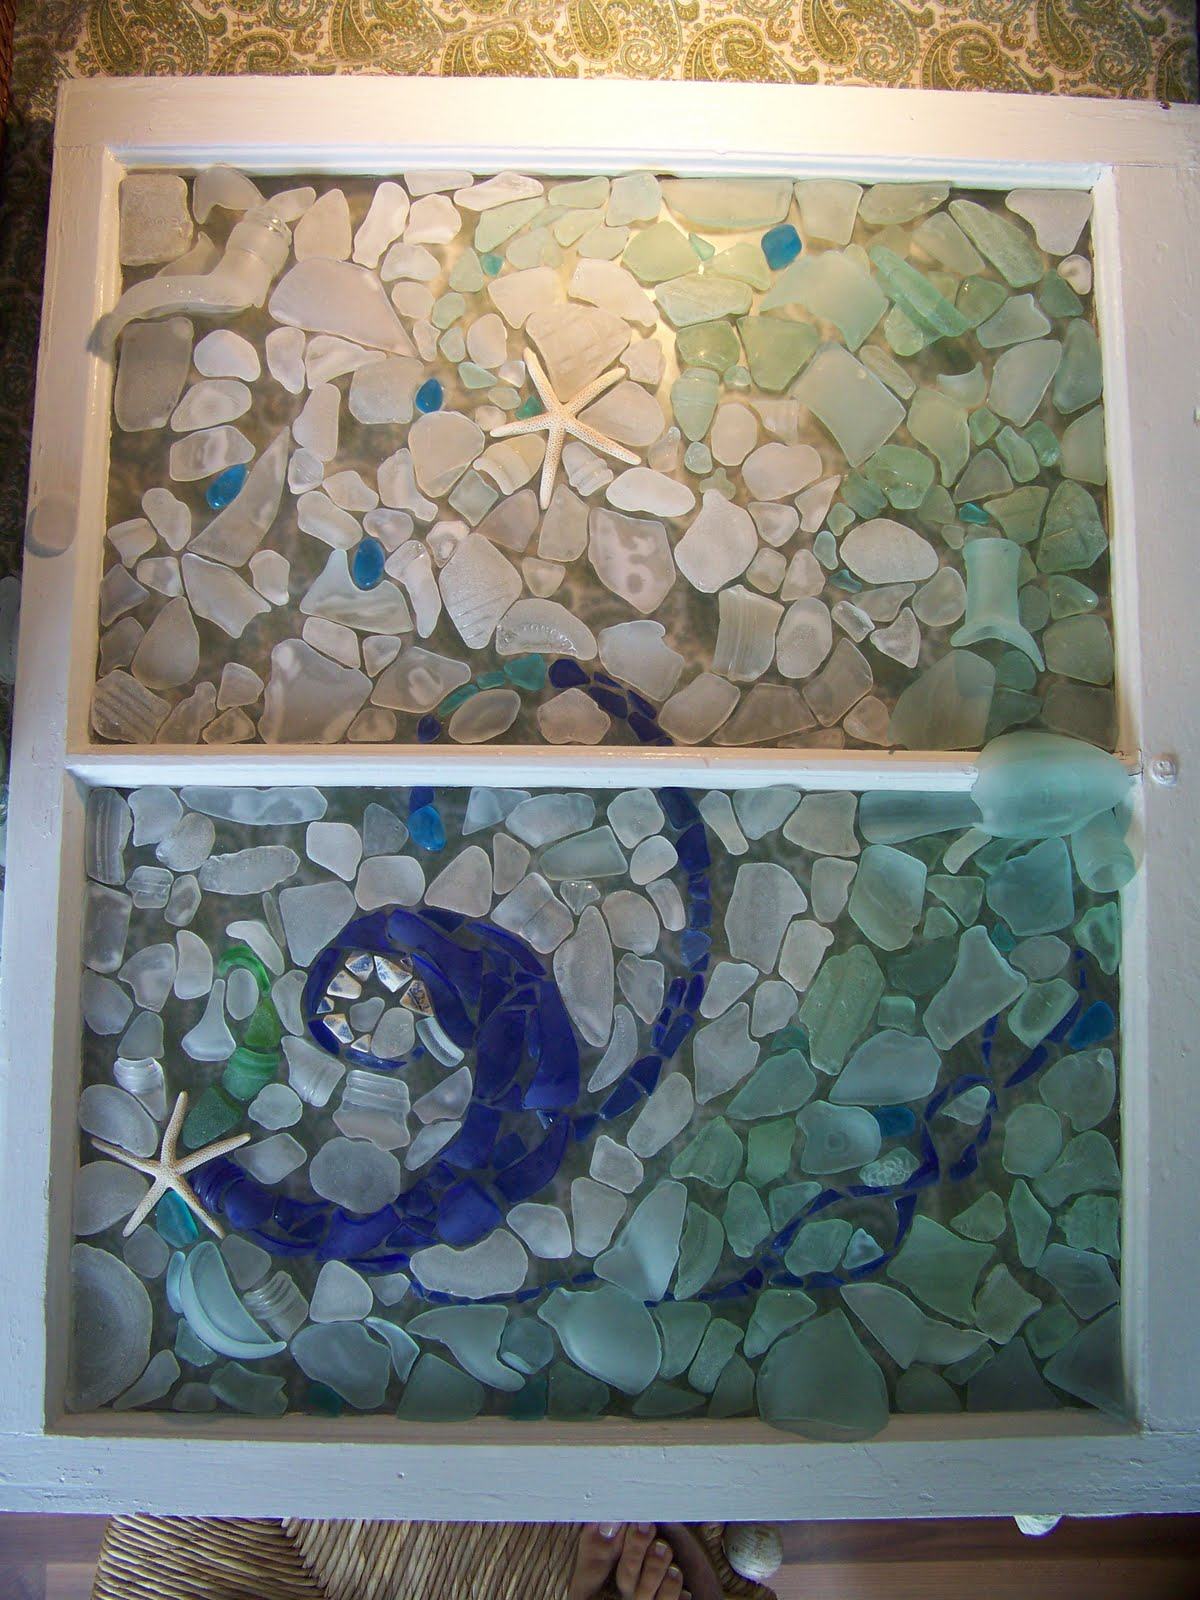 scarborough seashells: a new sea glass window